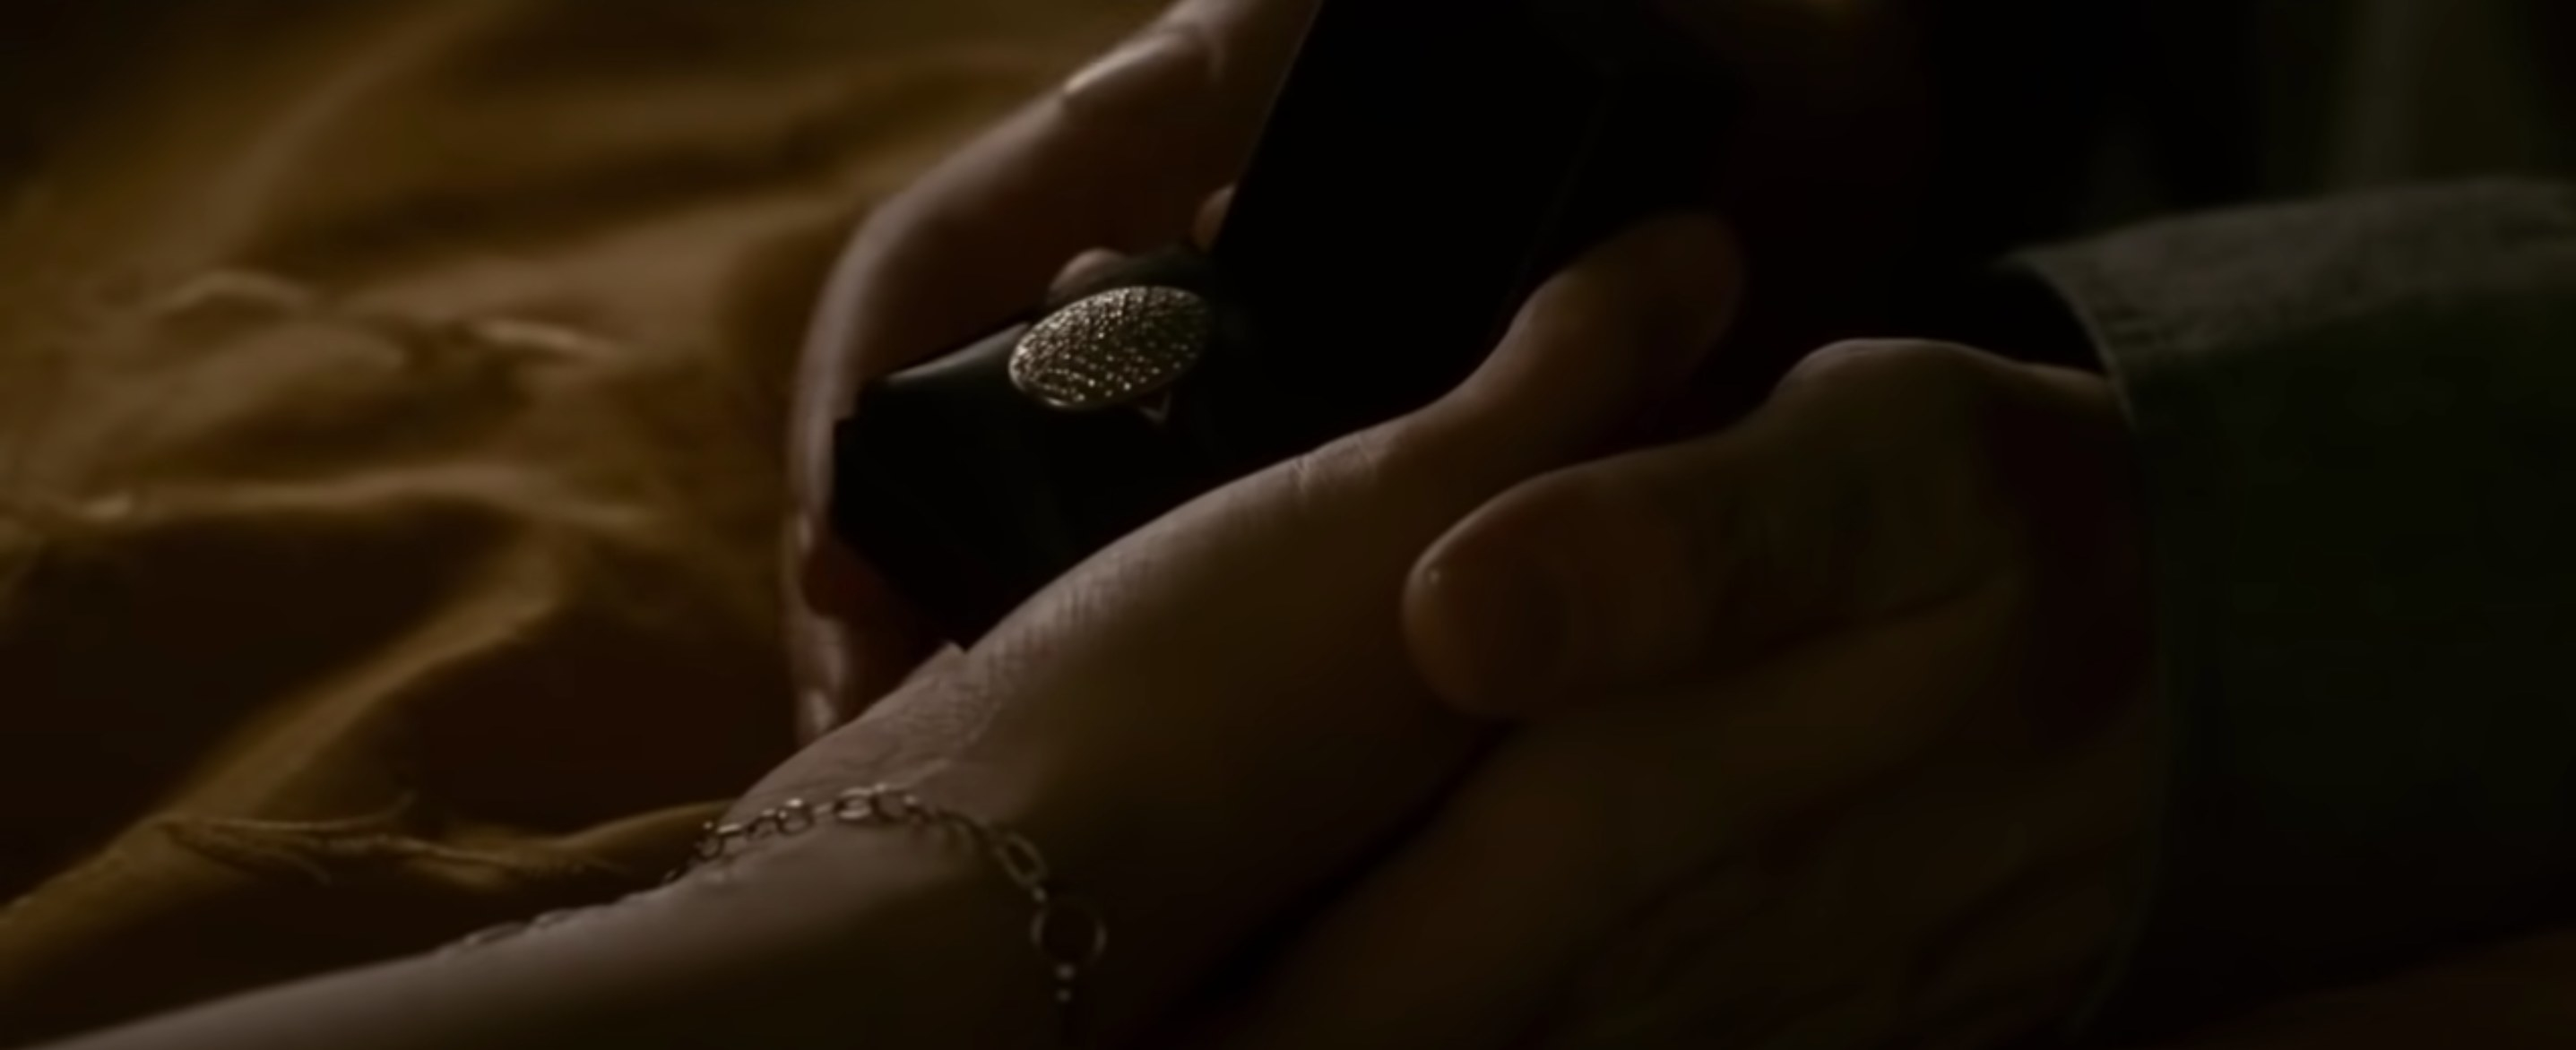 Edward putting a box with an engagement ring into bella's hand